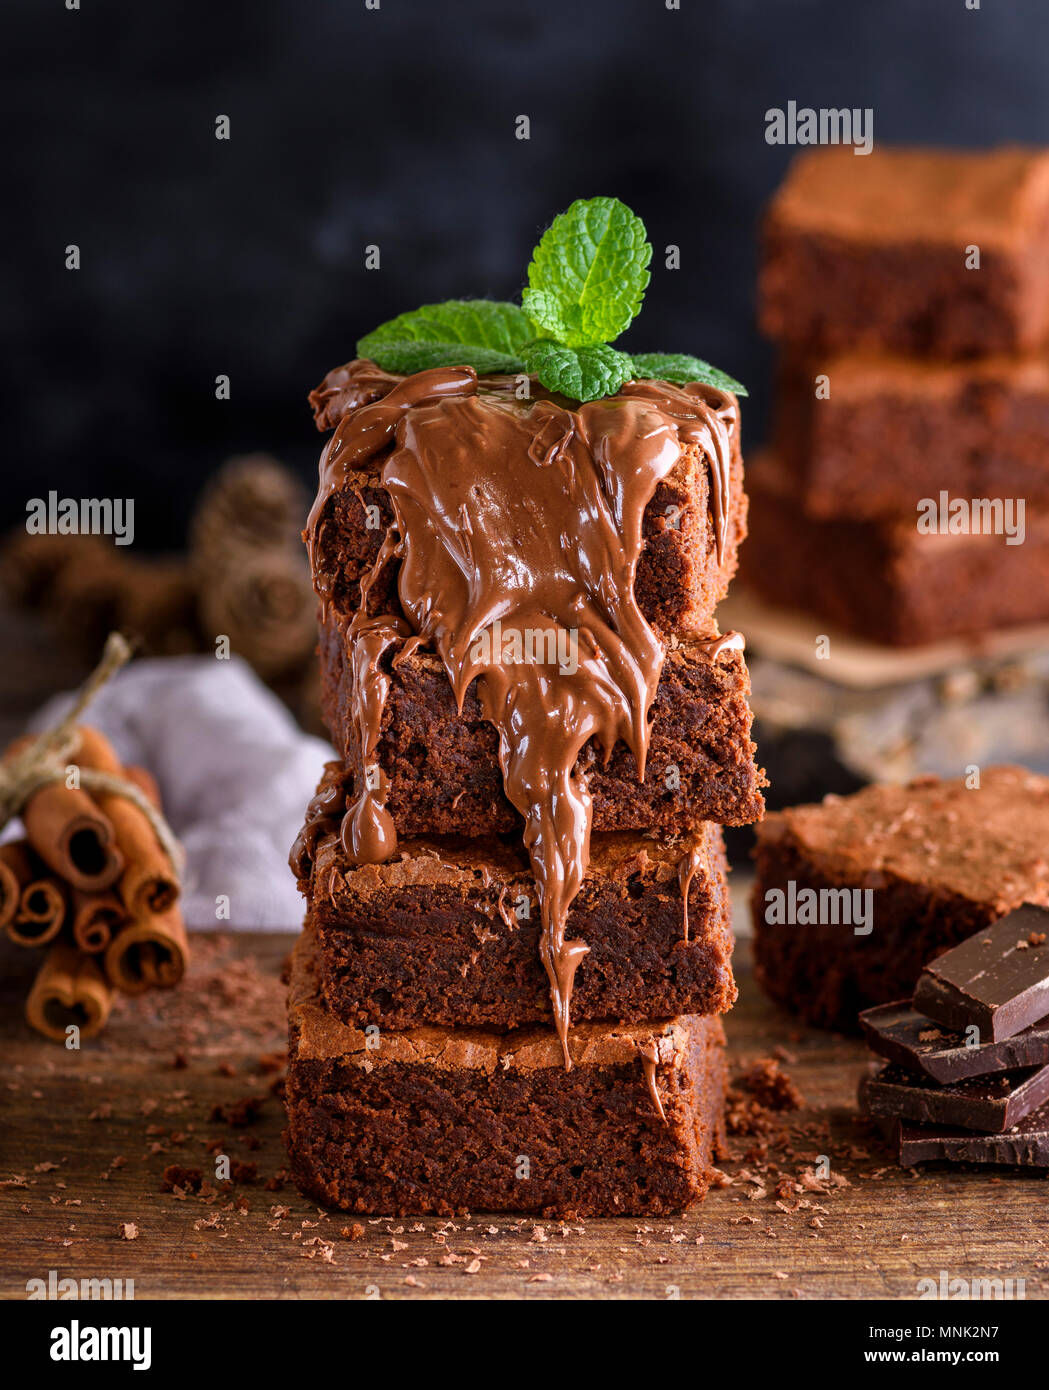 stack of square pieces of baked brownie chocolate poured on brown wooden board, close up - Stock Image